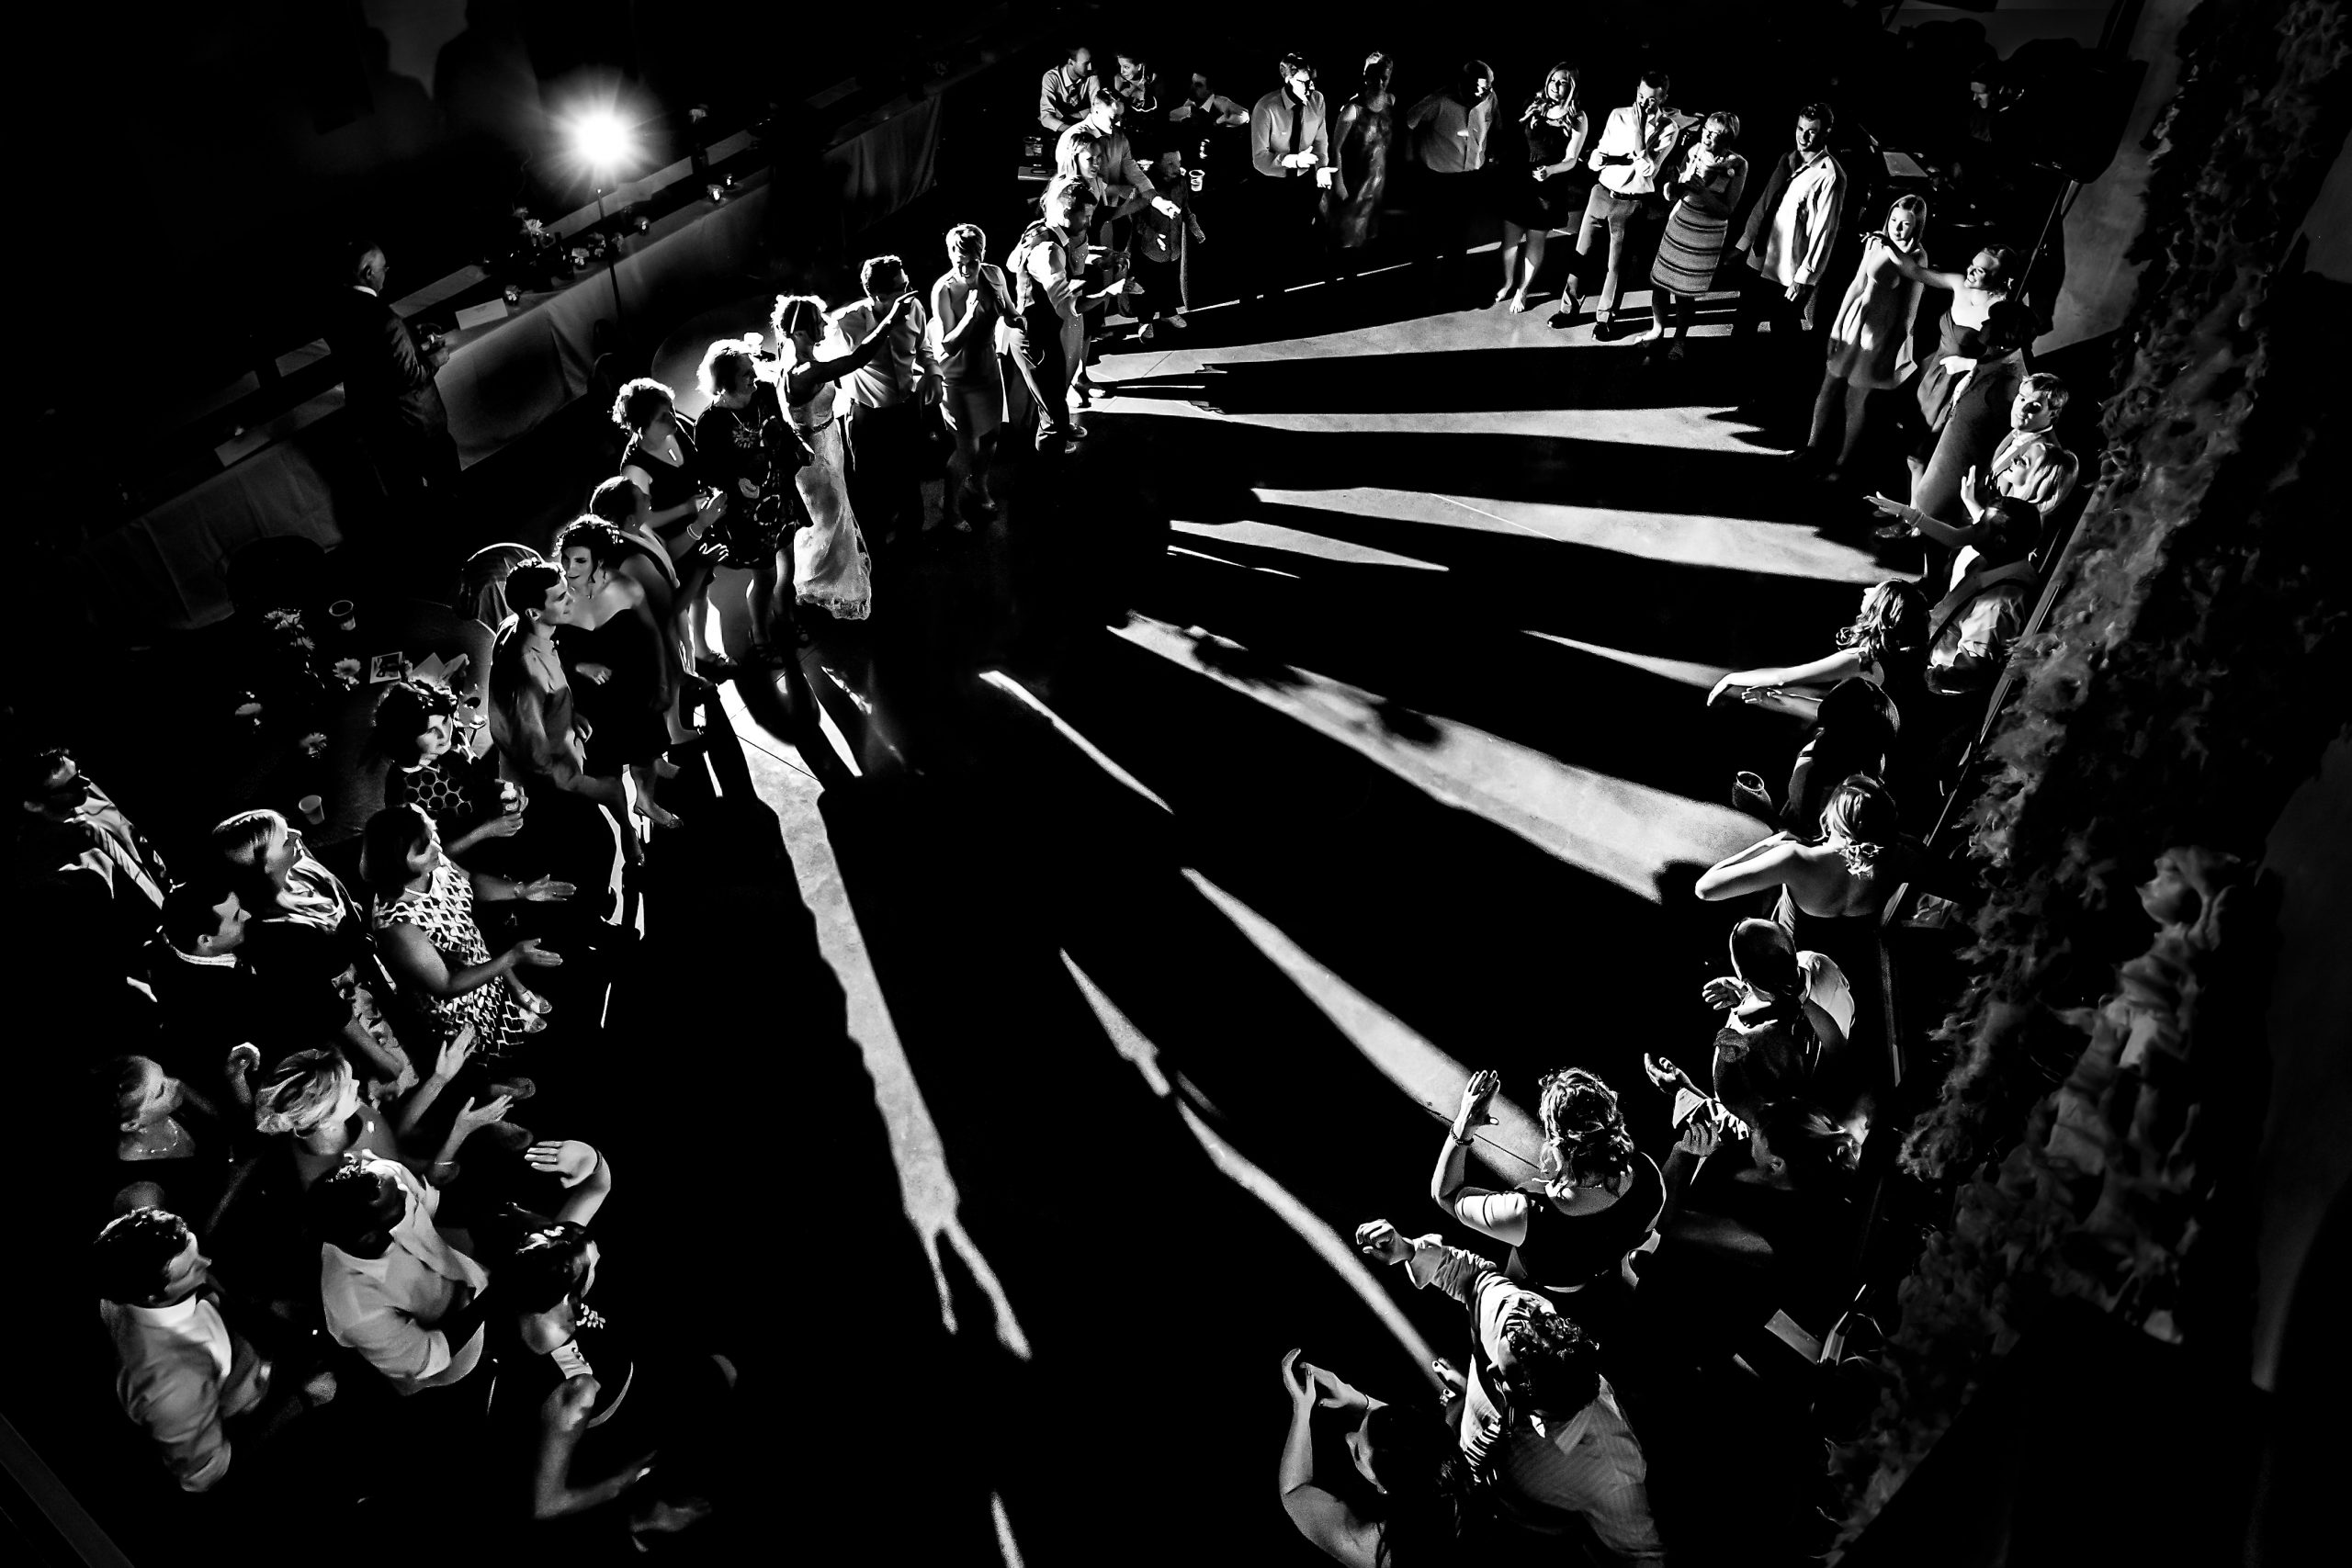 Long shadows are shown as partygoers gather in a circle